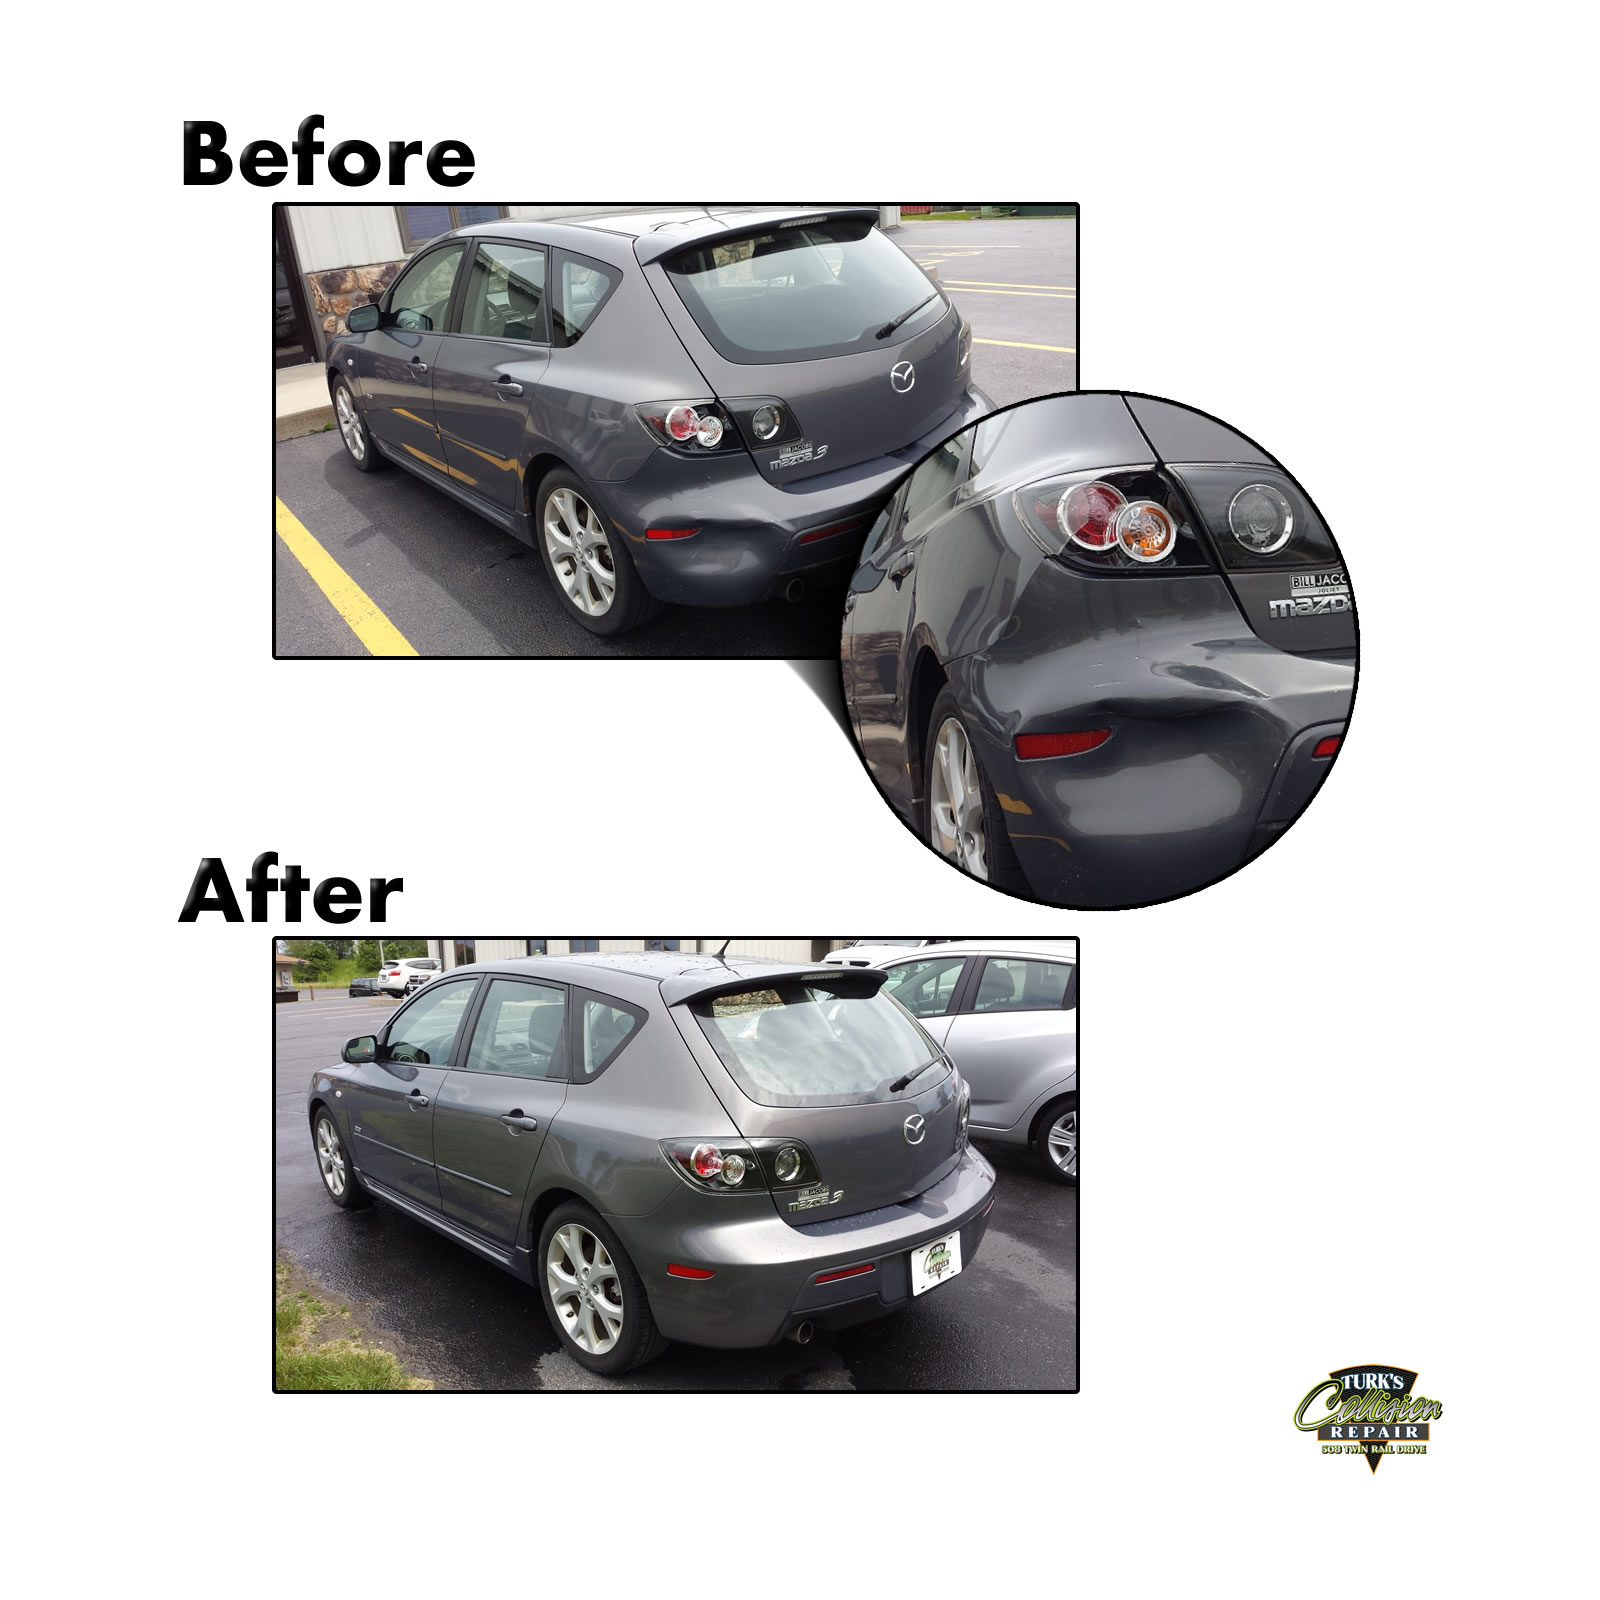 Mazda 3 Collision Repair